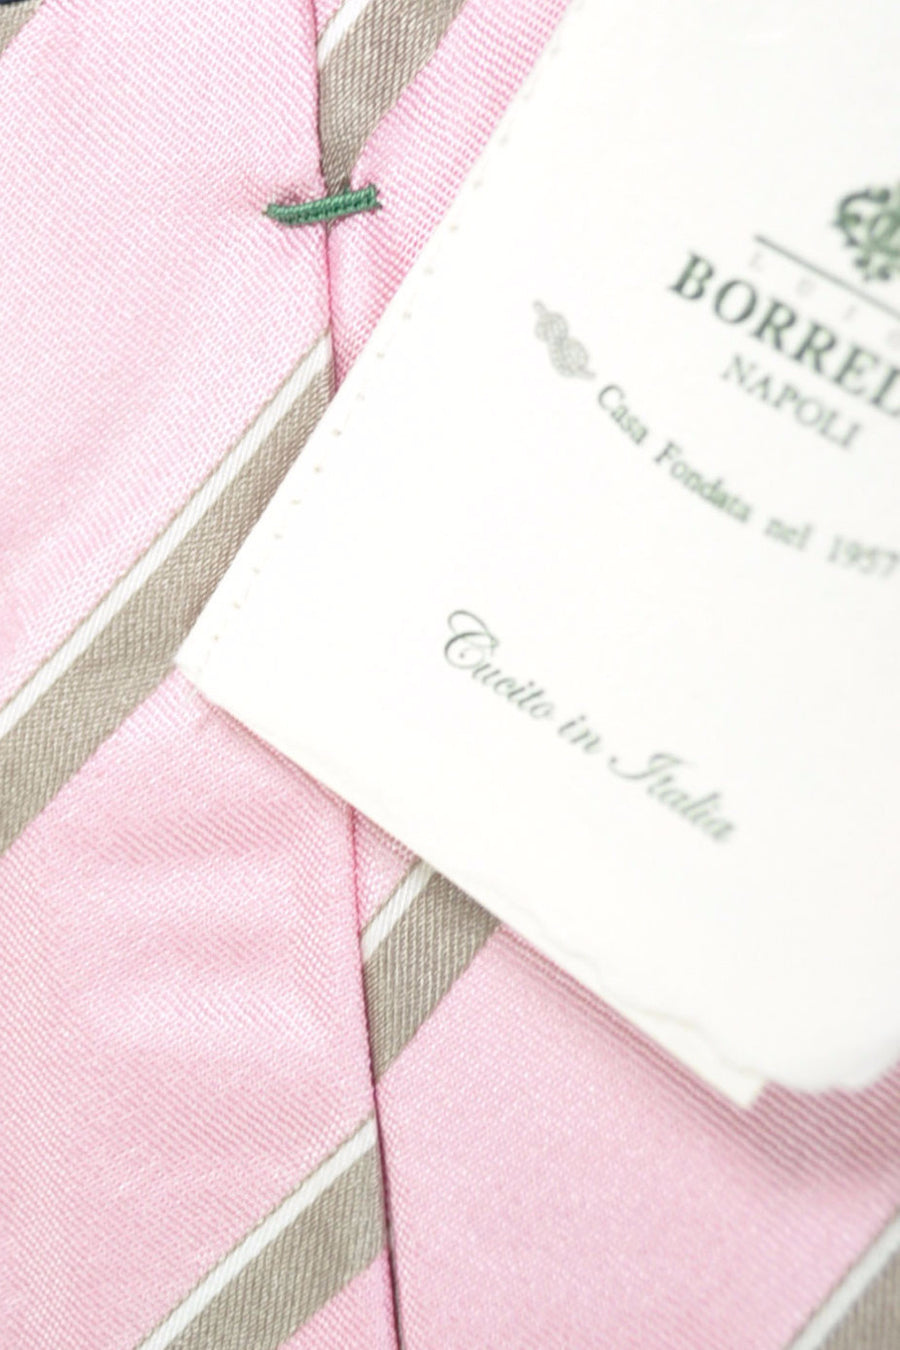 Luigi Borrelli Sevenfold Tie ROYAL COLLECTION Pink Taupe White Stripes